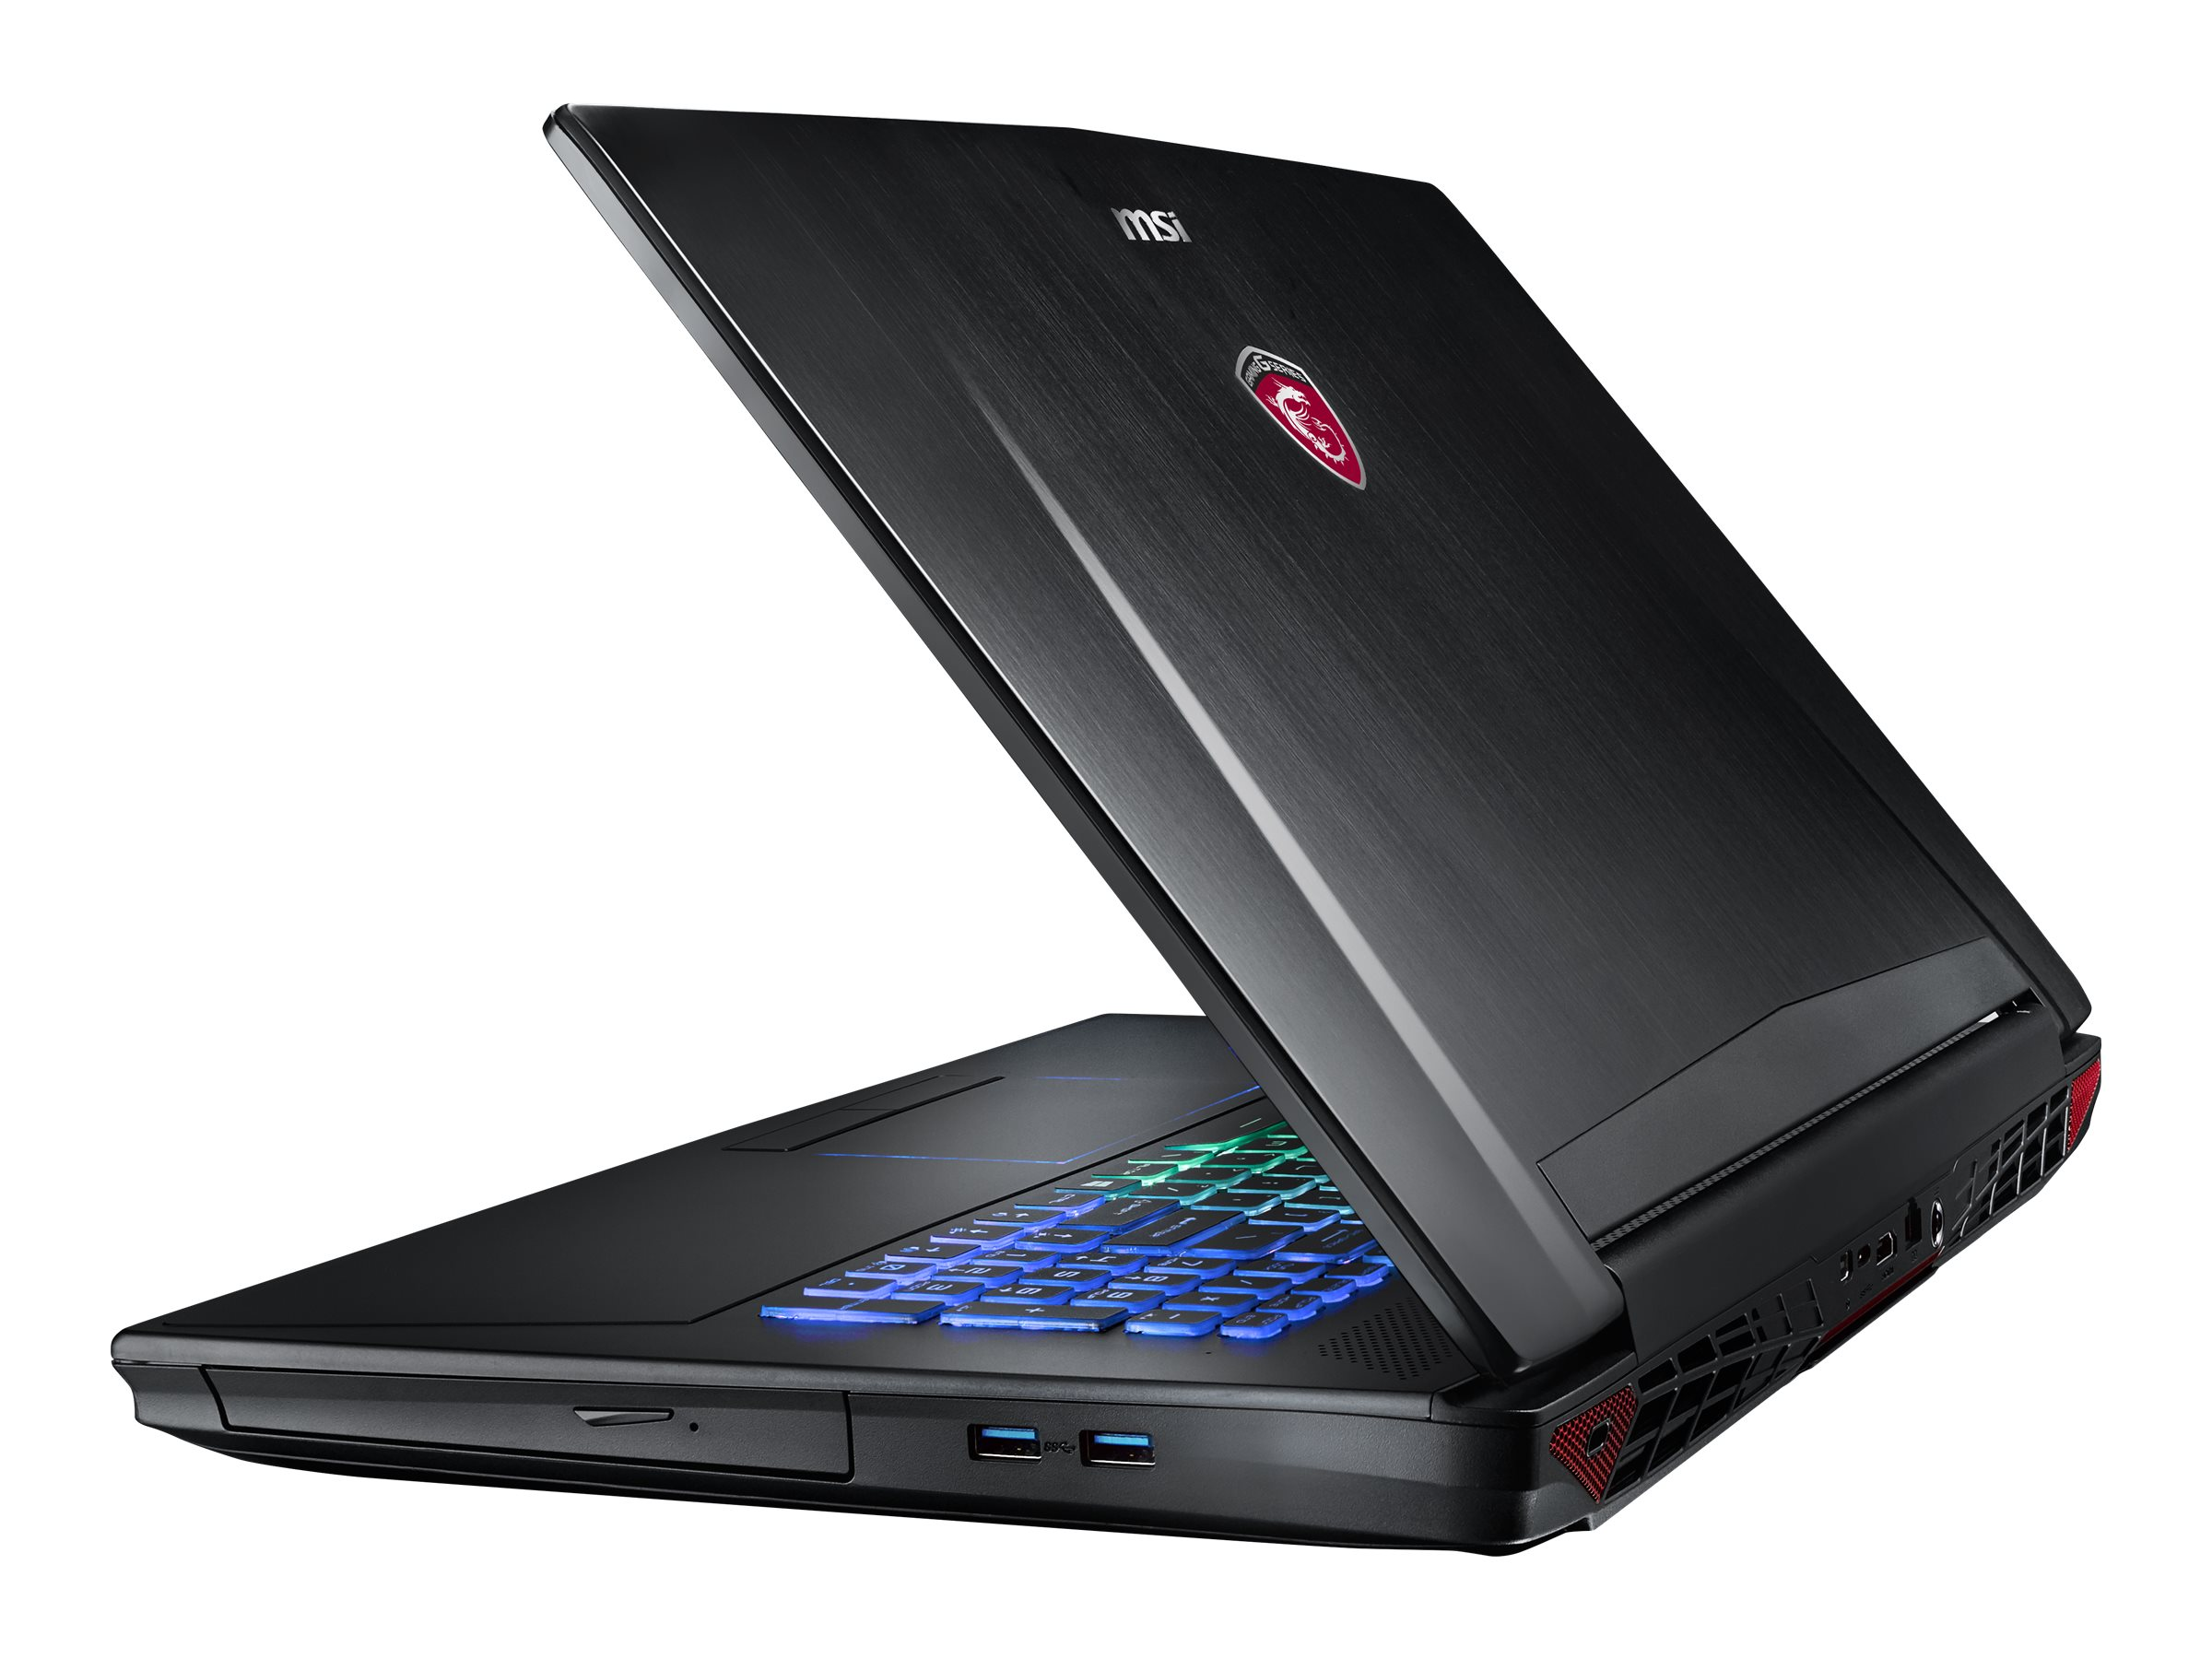 MSI GT72VR Dominator-032 Notebook PC, GT72VR DOMINATOR-032